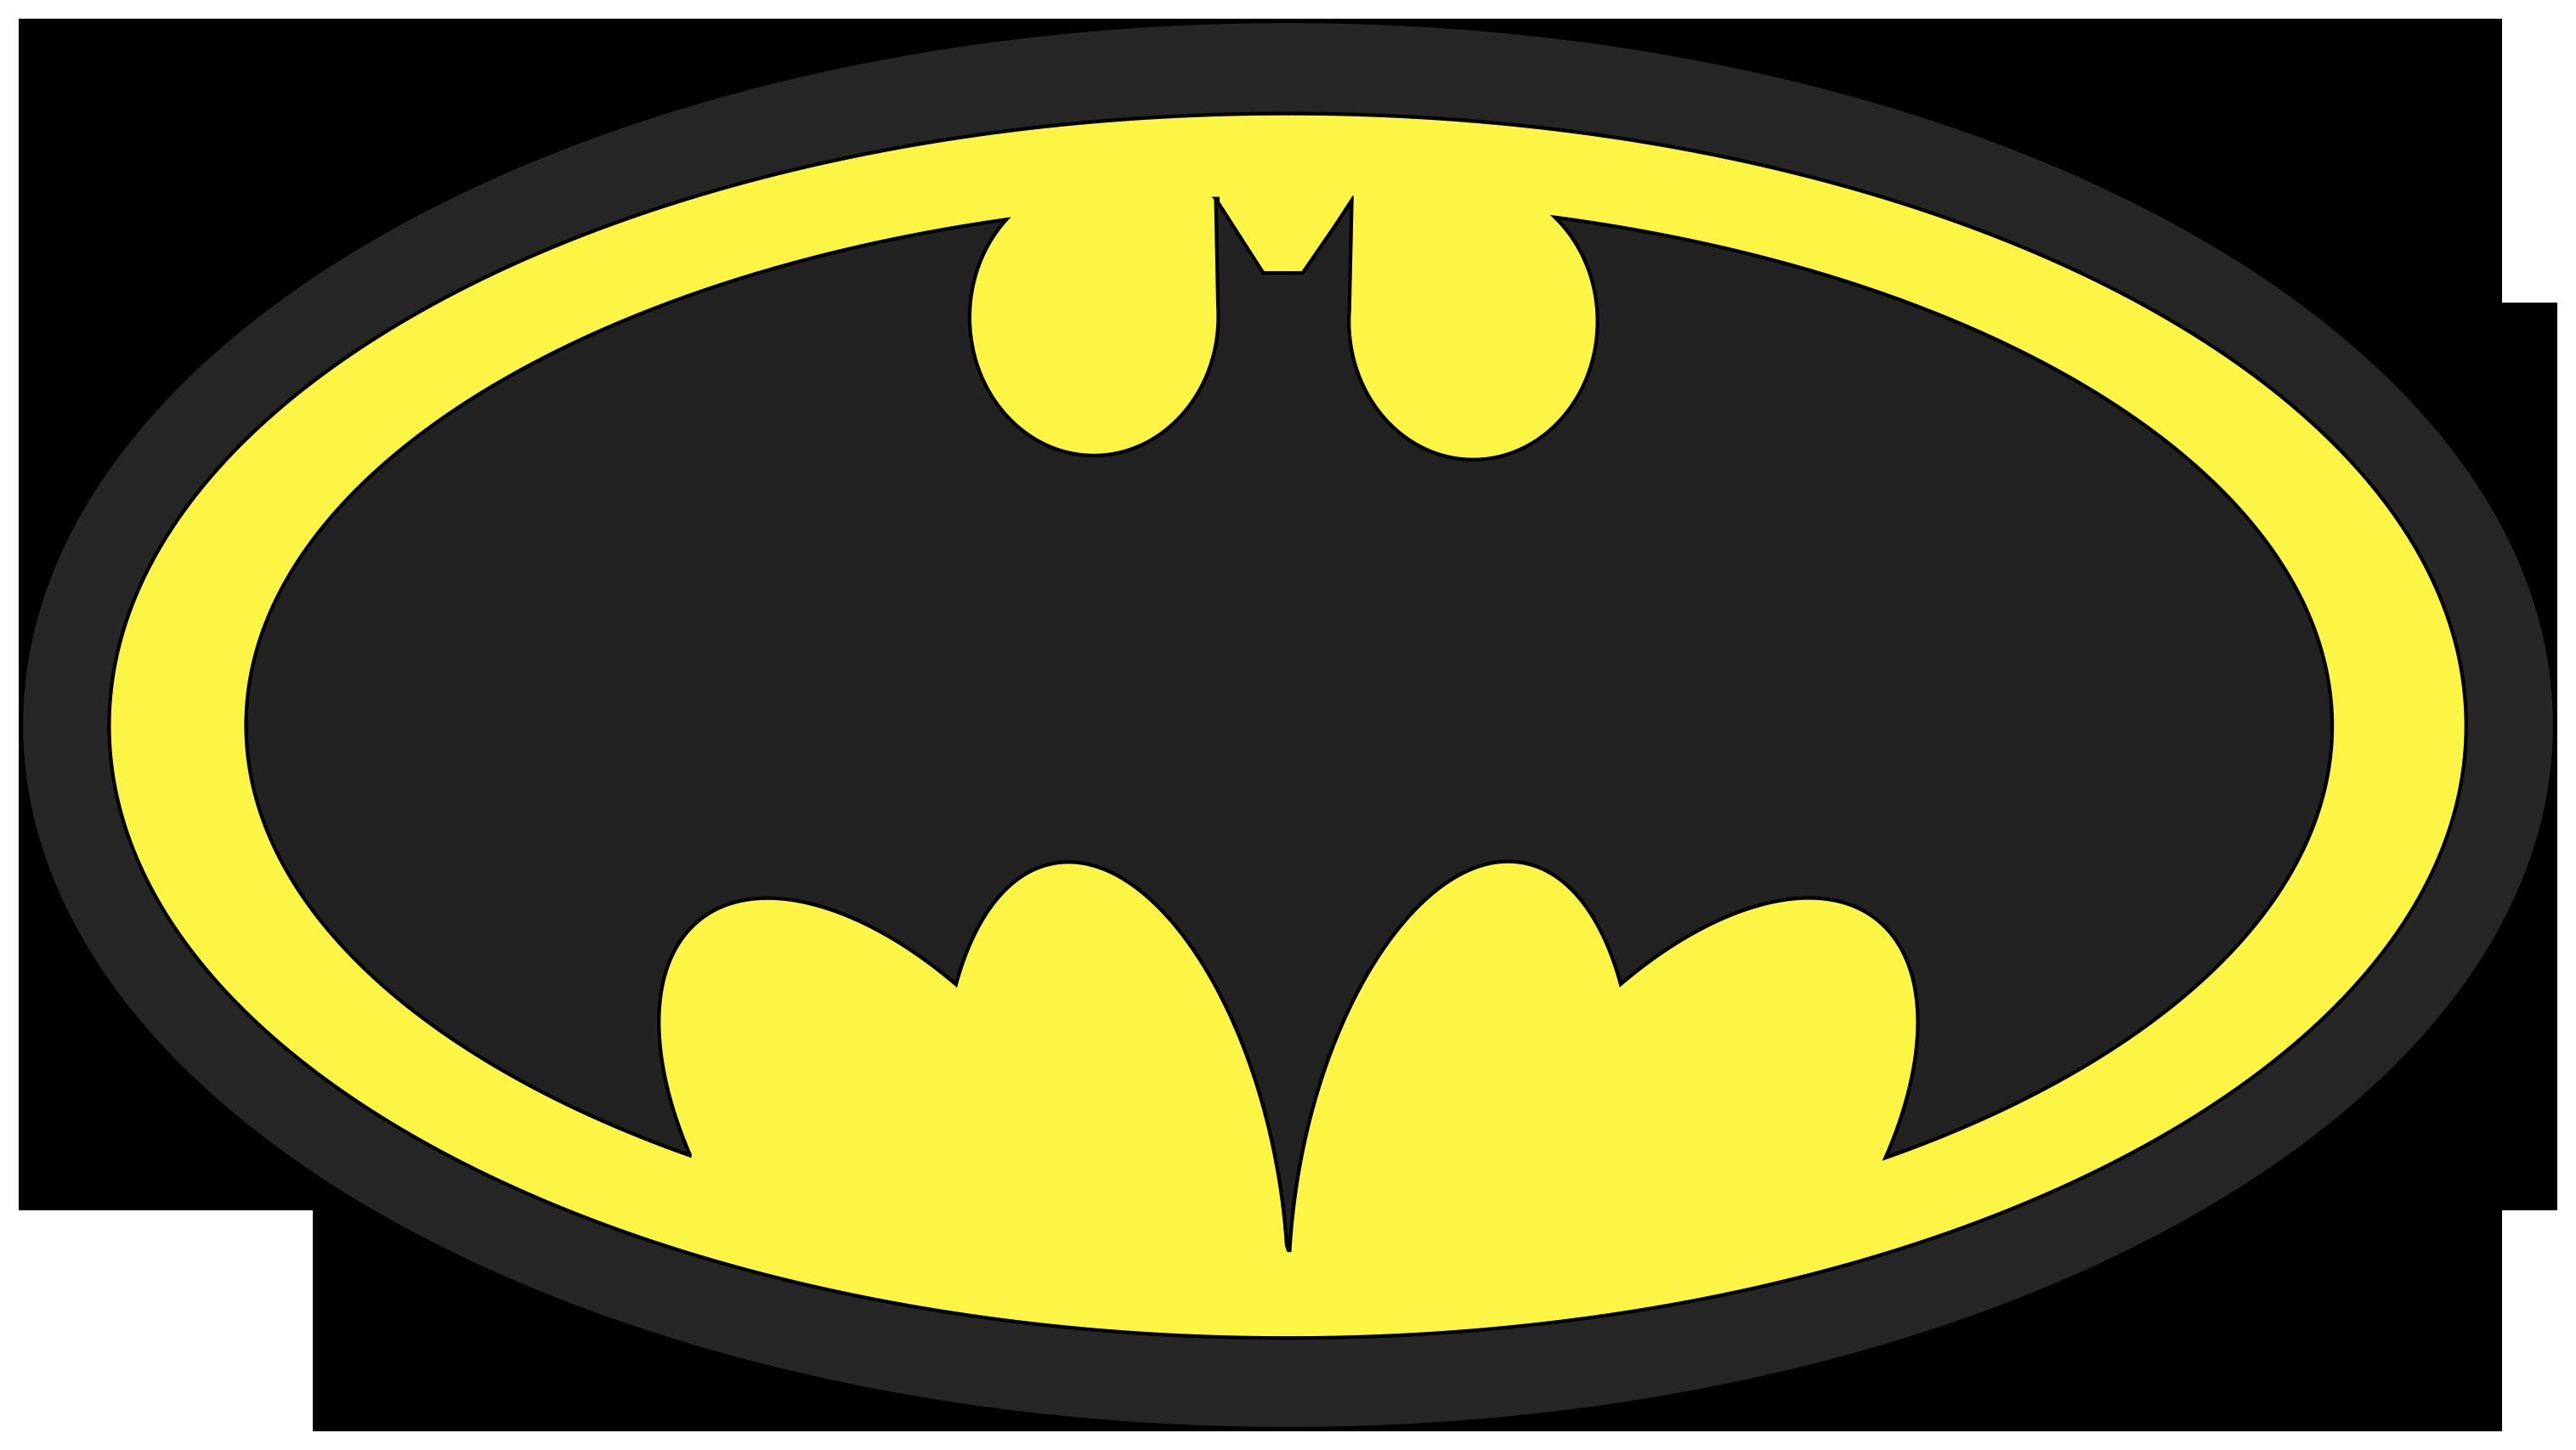 Batman Mask Clipart at GetDrawings com | Free for personal